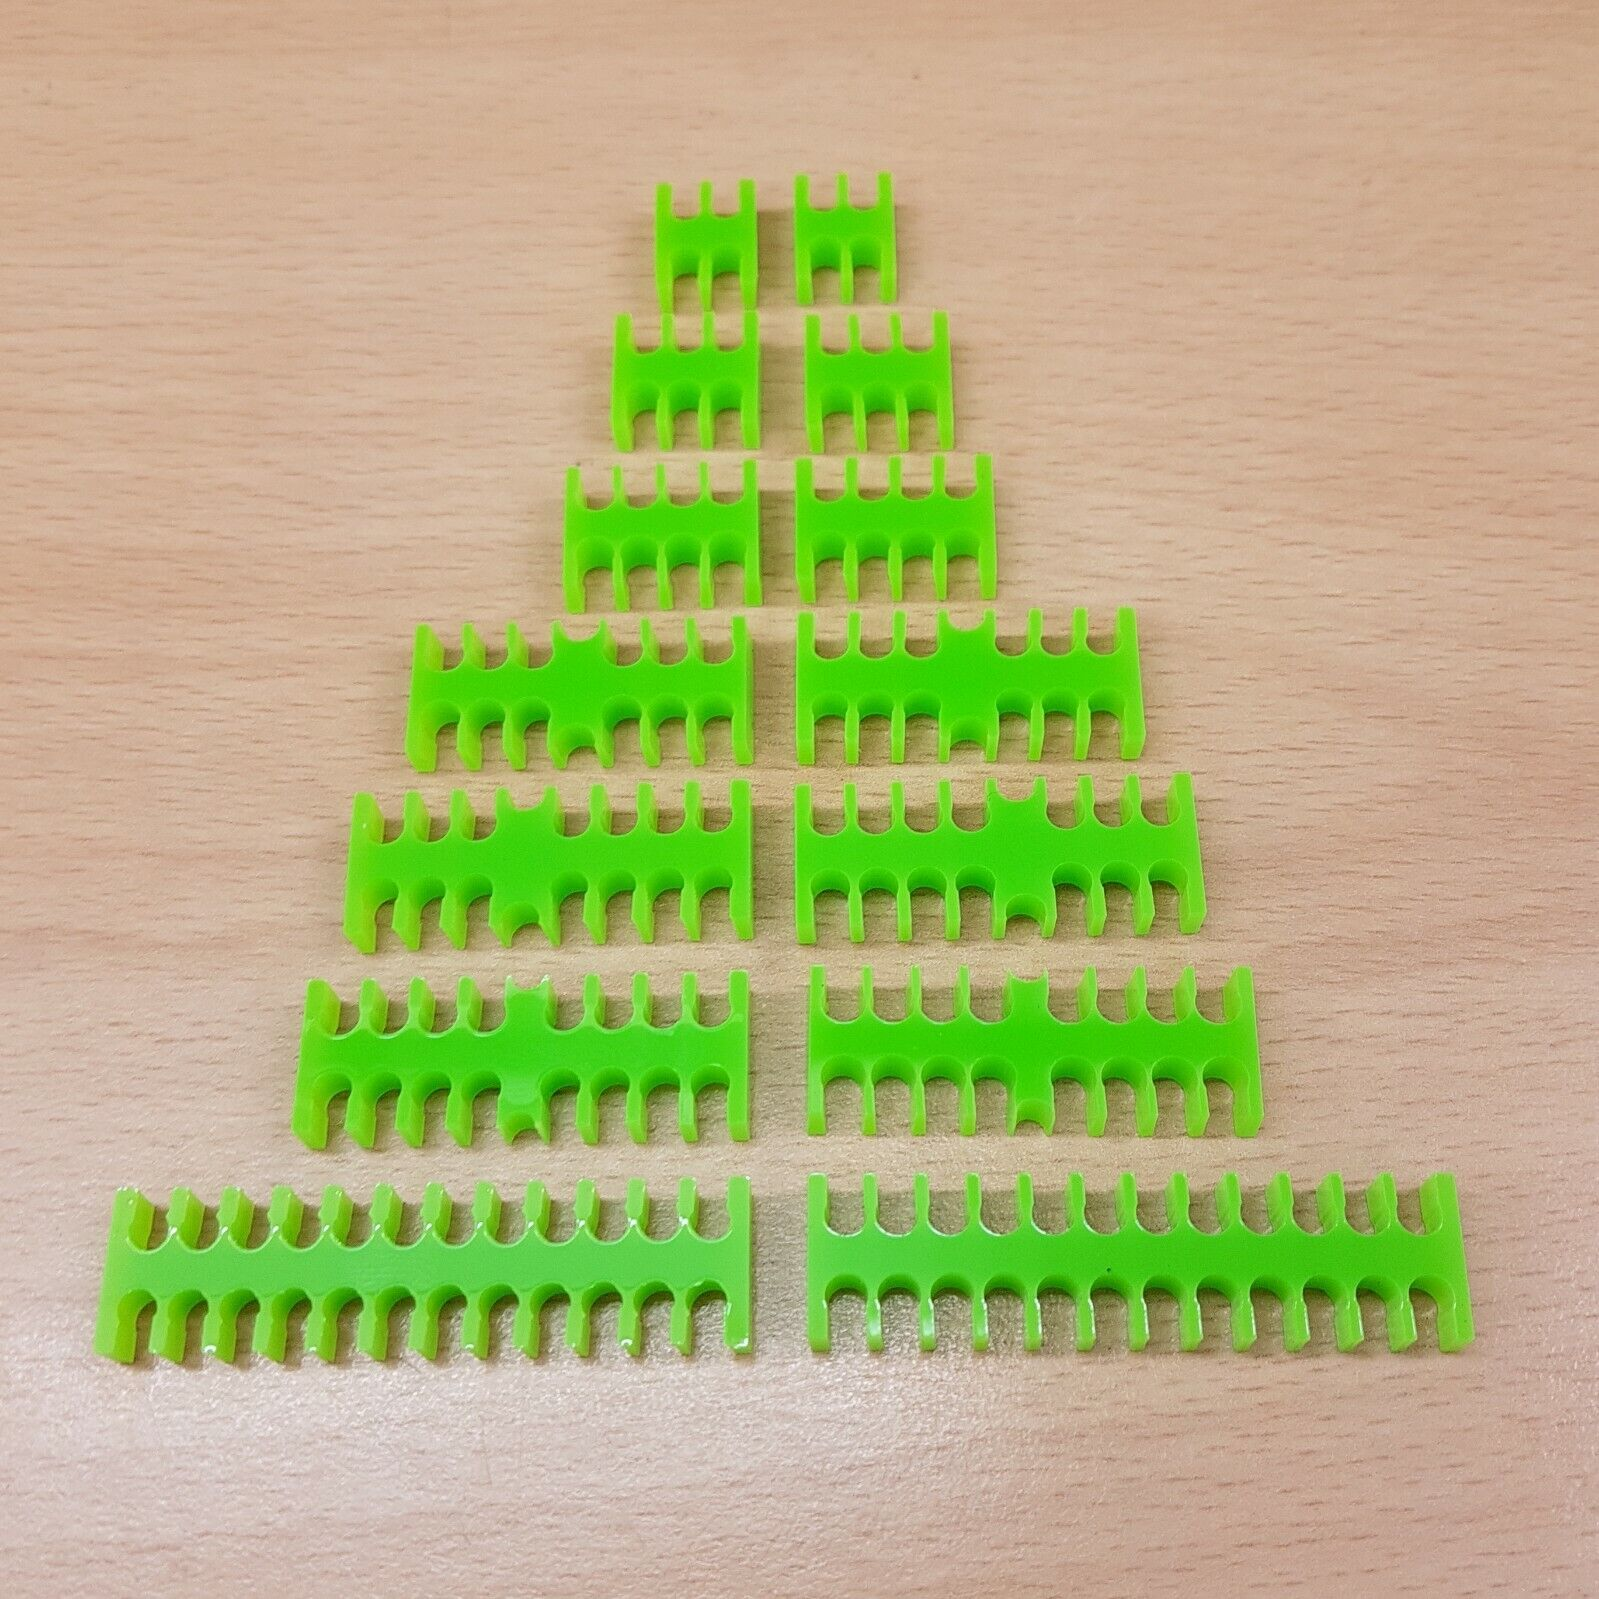 14 pieces CABLE COMB - OPEN TYPE LIME GREEN for 3MM SLEEVED